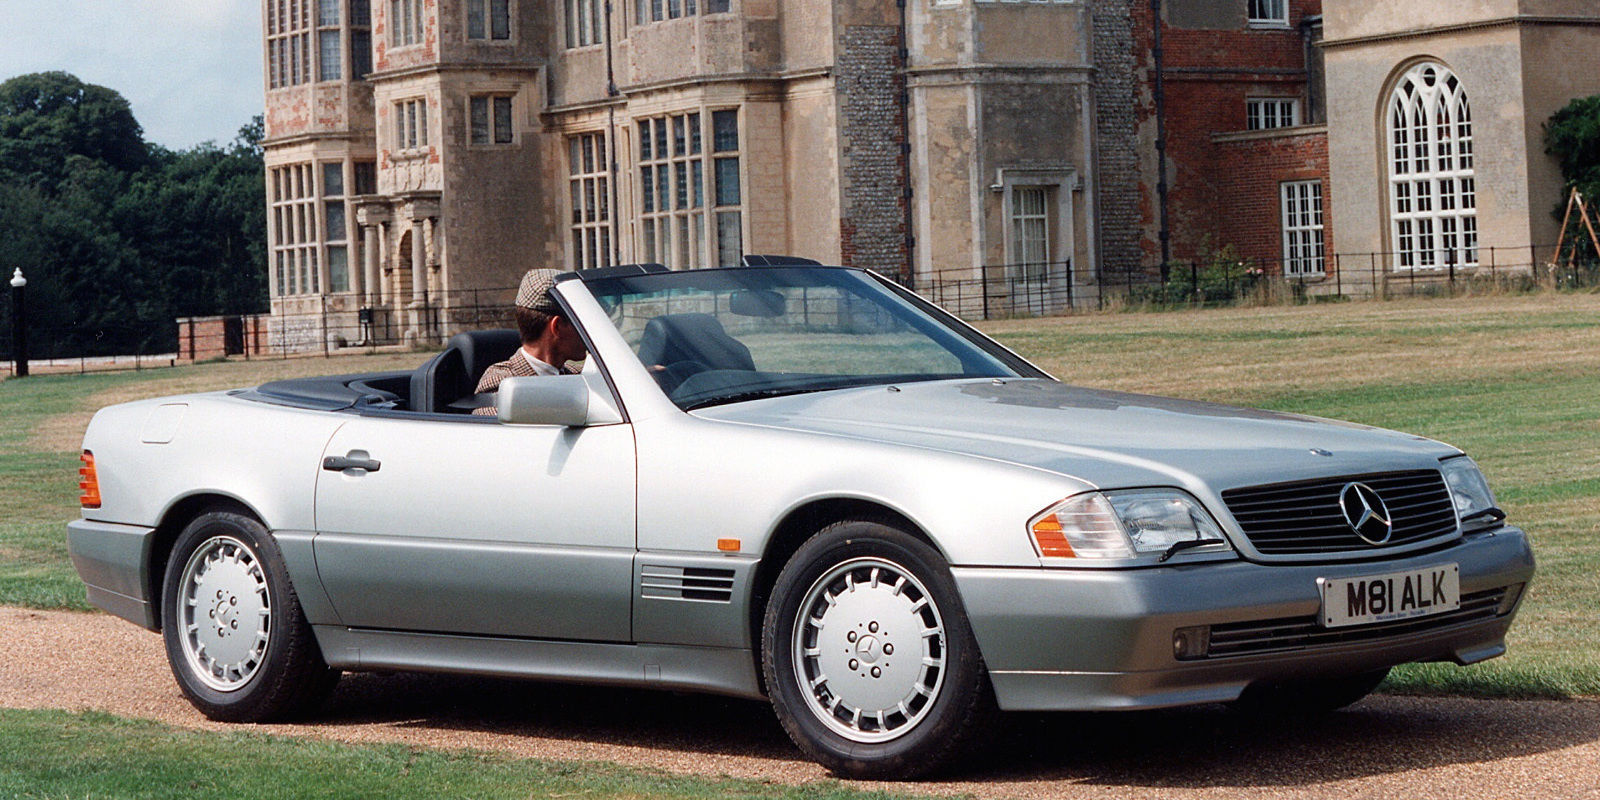 In 1990 the mercedes benz 500sl was the pinnacle of for Mercedes benz 500 sl